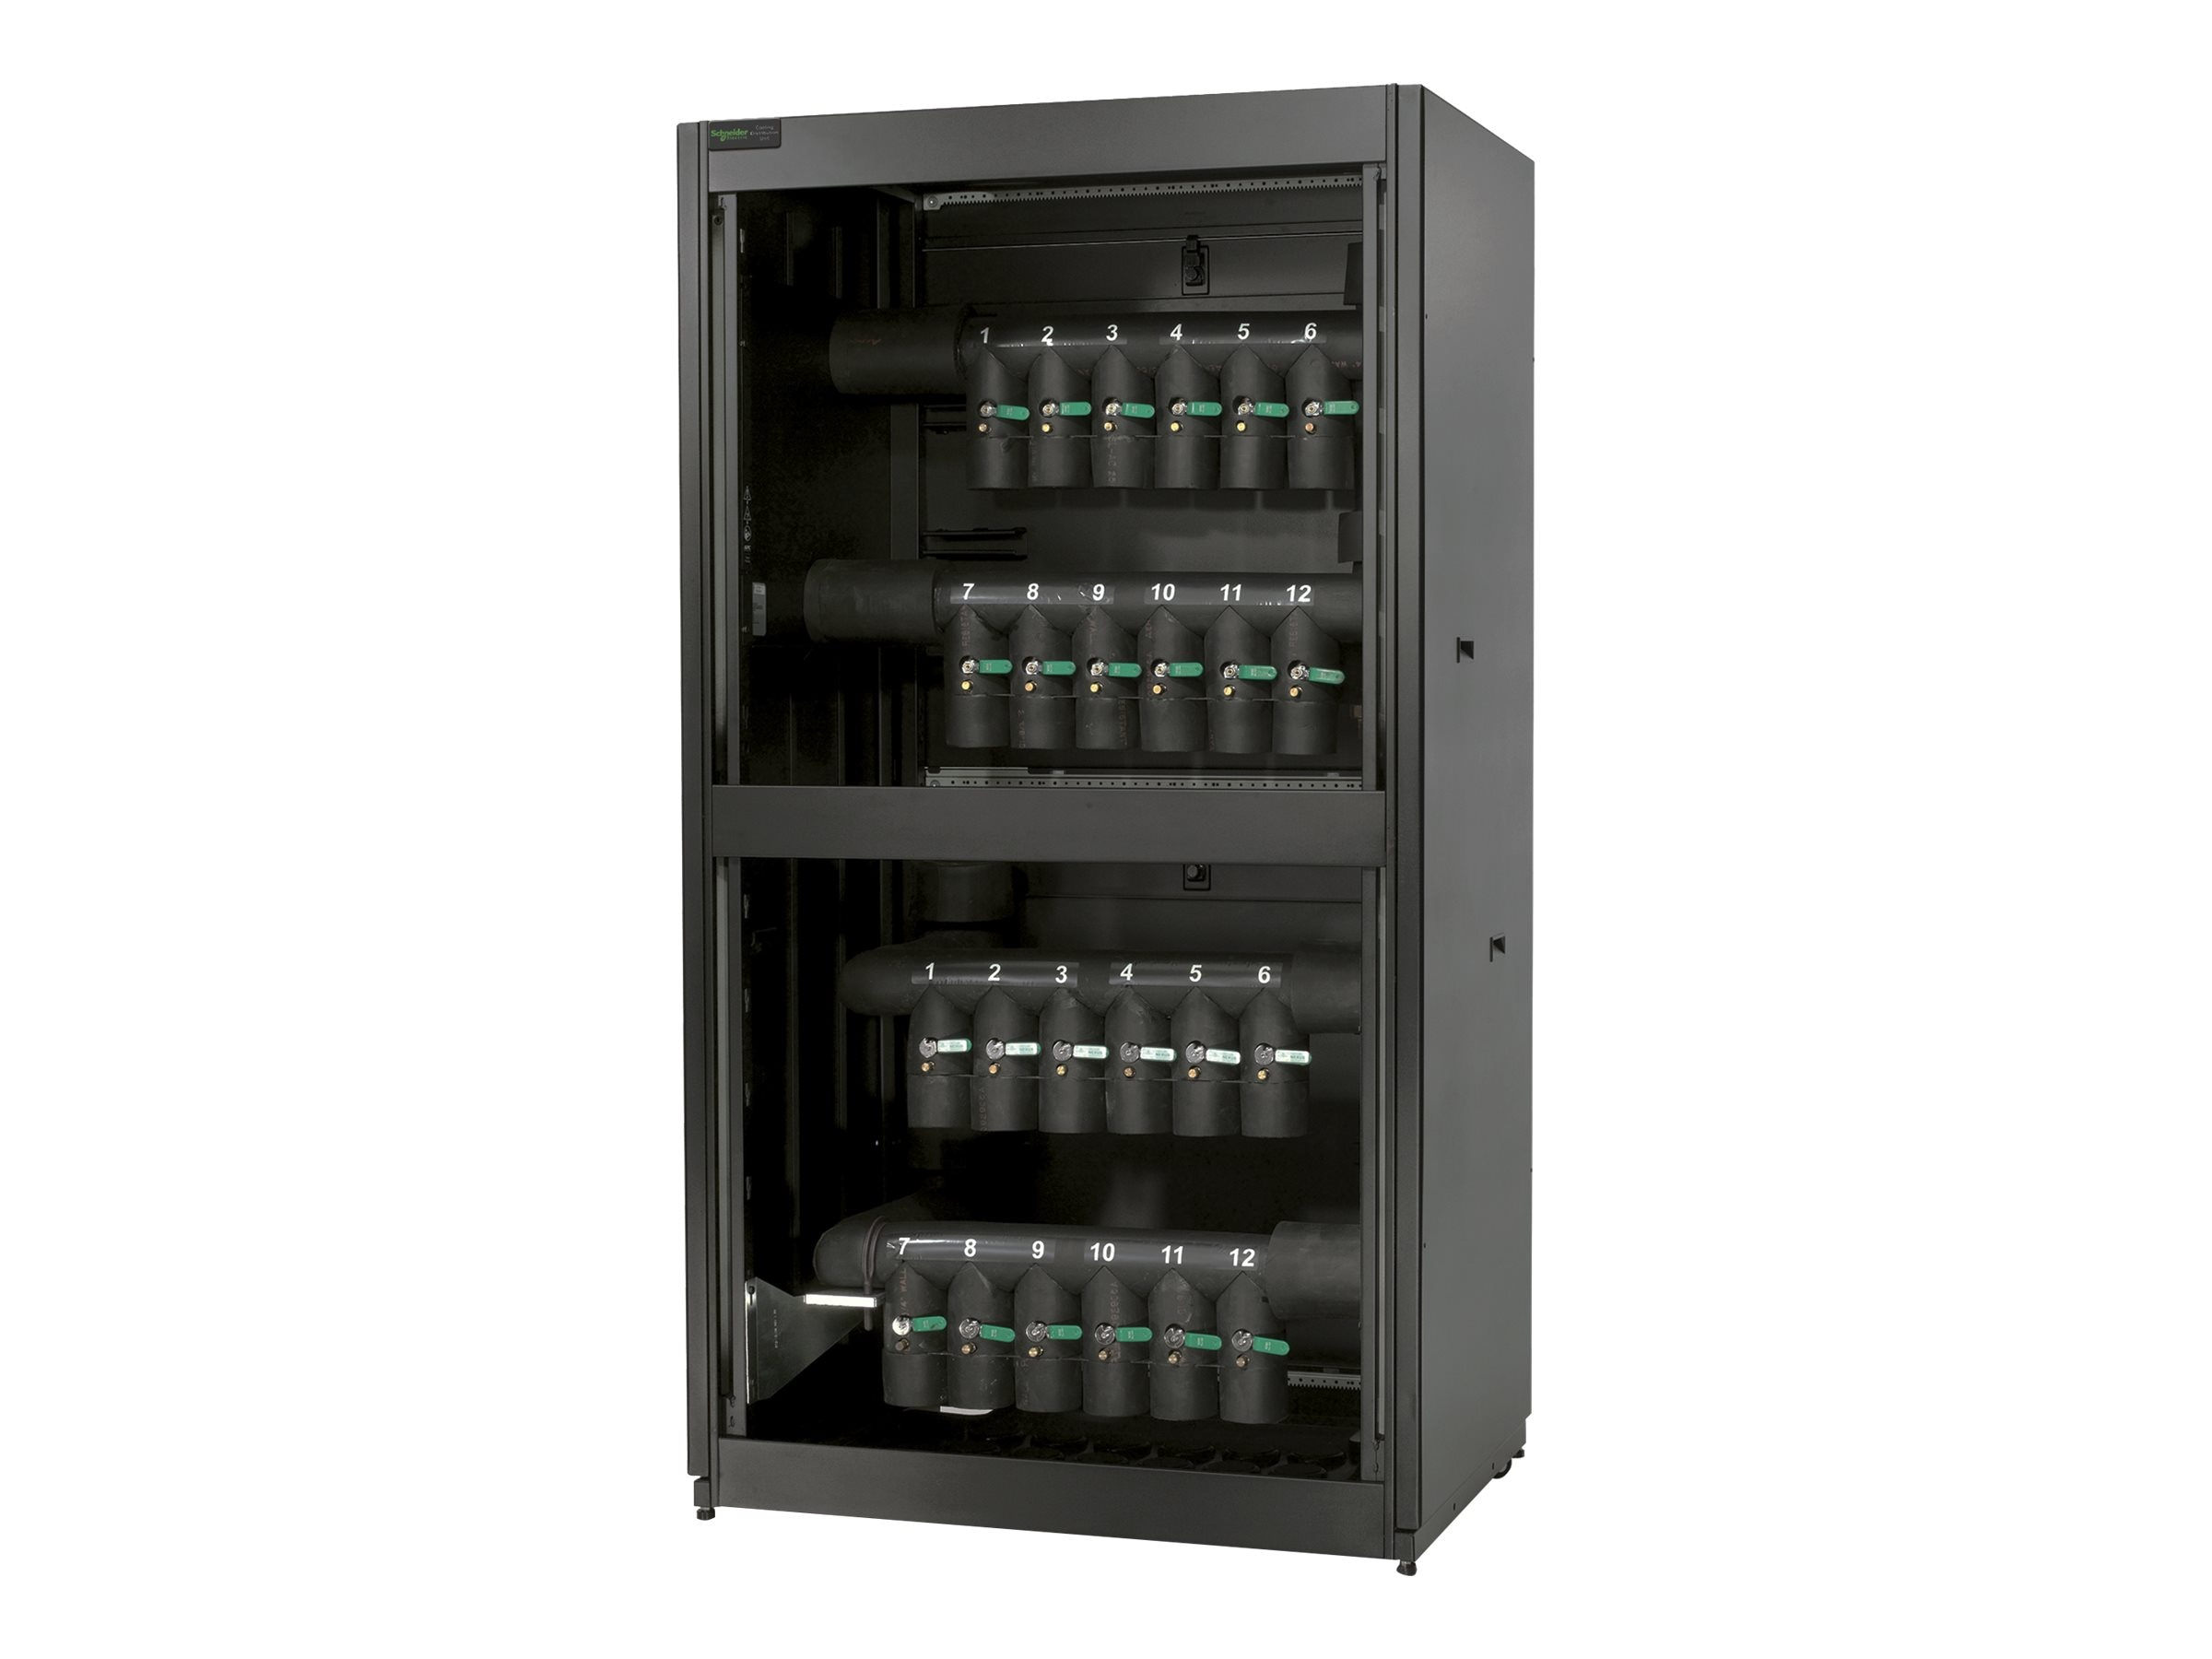 APC Cooling Distribution Unit 12 Circuit, Bottom Top Mains, Bottom Distrobution Piping, ACFD12-B, 9347983, Rack Cooling Systems